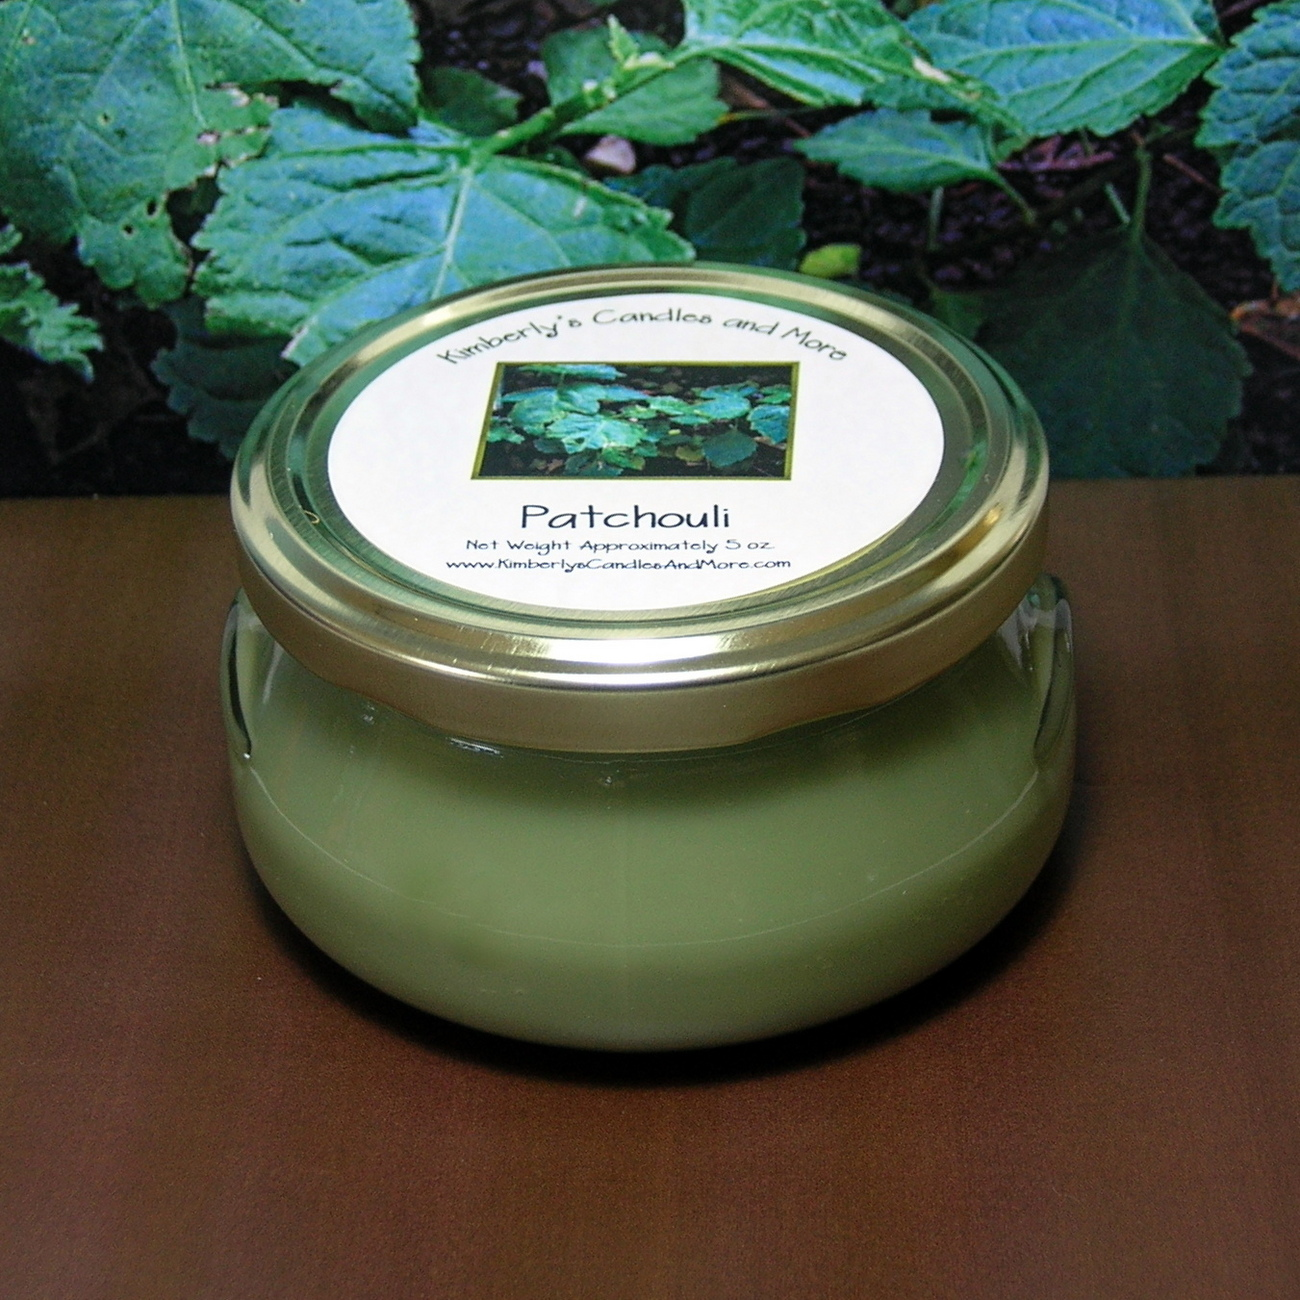 Patchouli 6 oz. Tureen Jar Wickless Candle